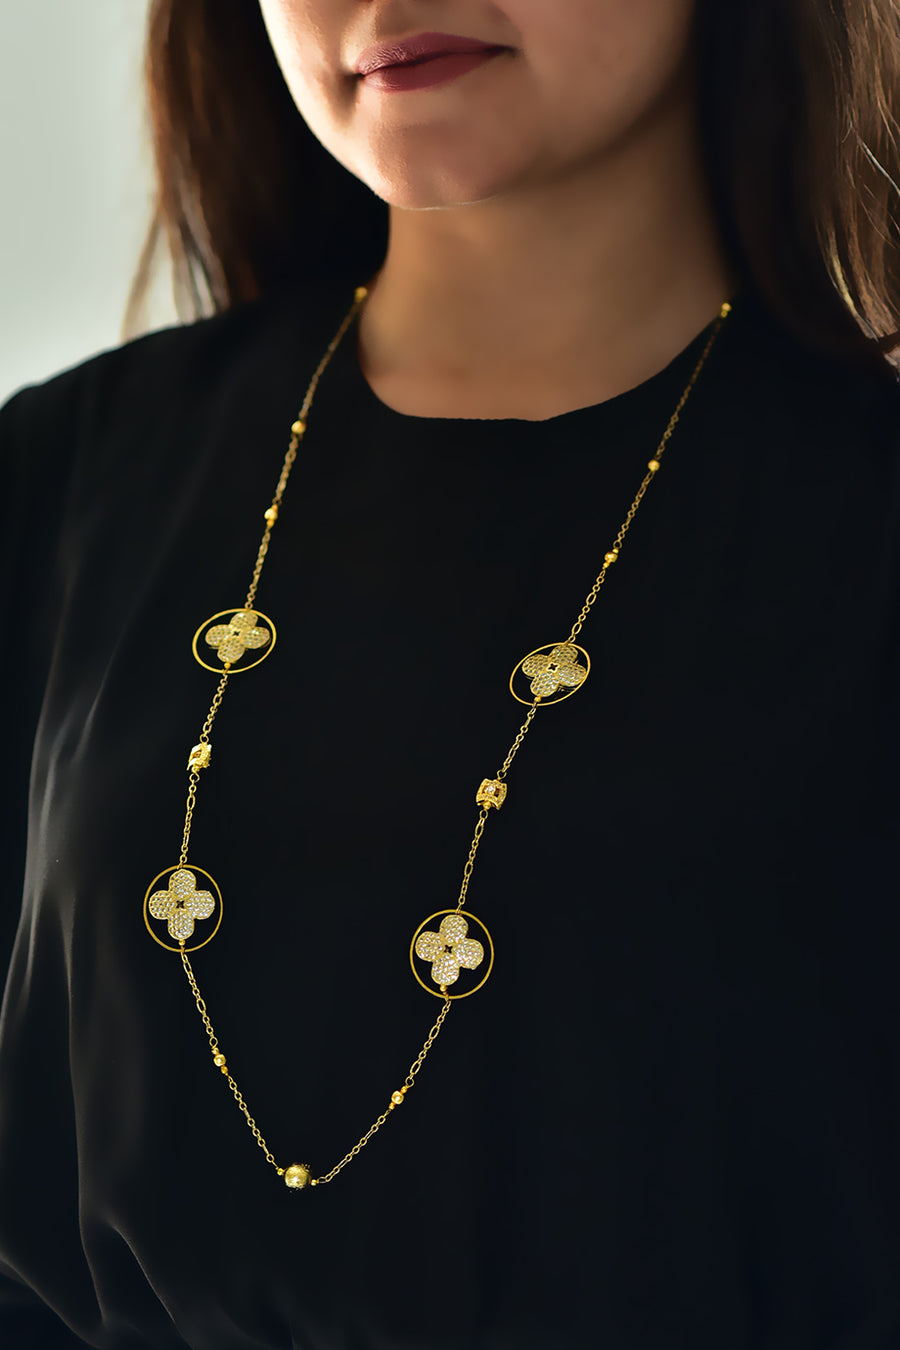 Floral Cubic Zirconia Geometric Necklace Gold Lifestyle